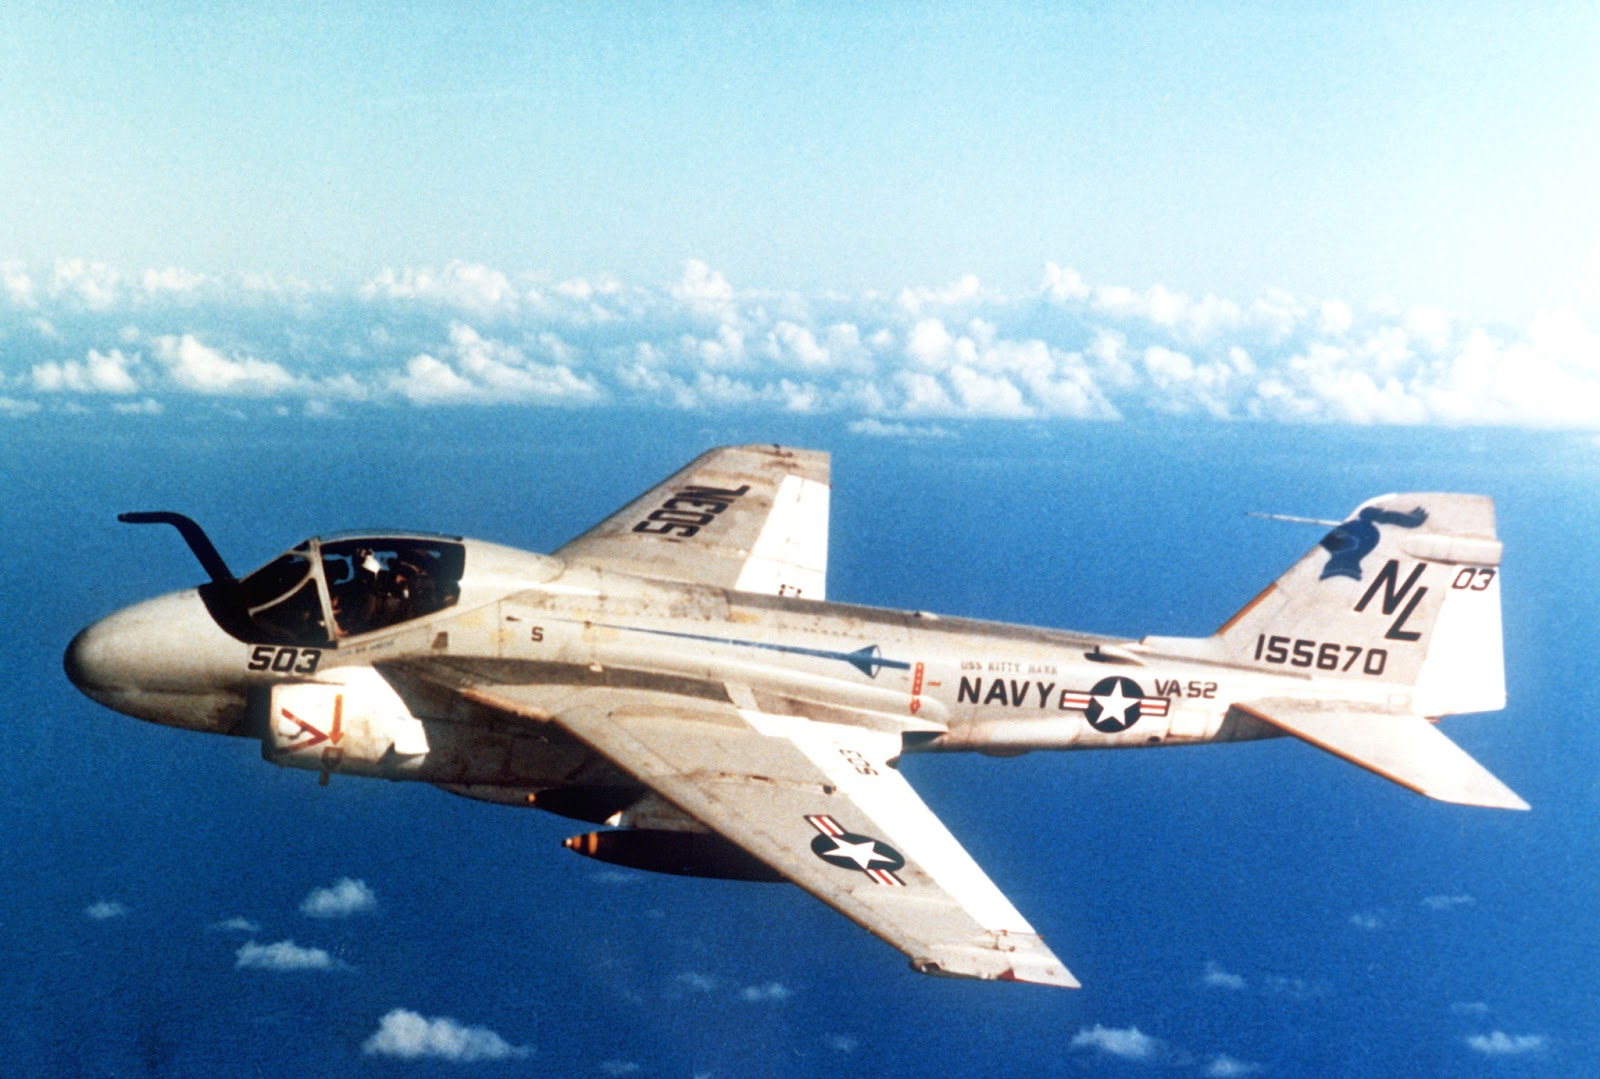 Public Domain Aircraft Images: Grumman A-6 Intruder